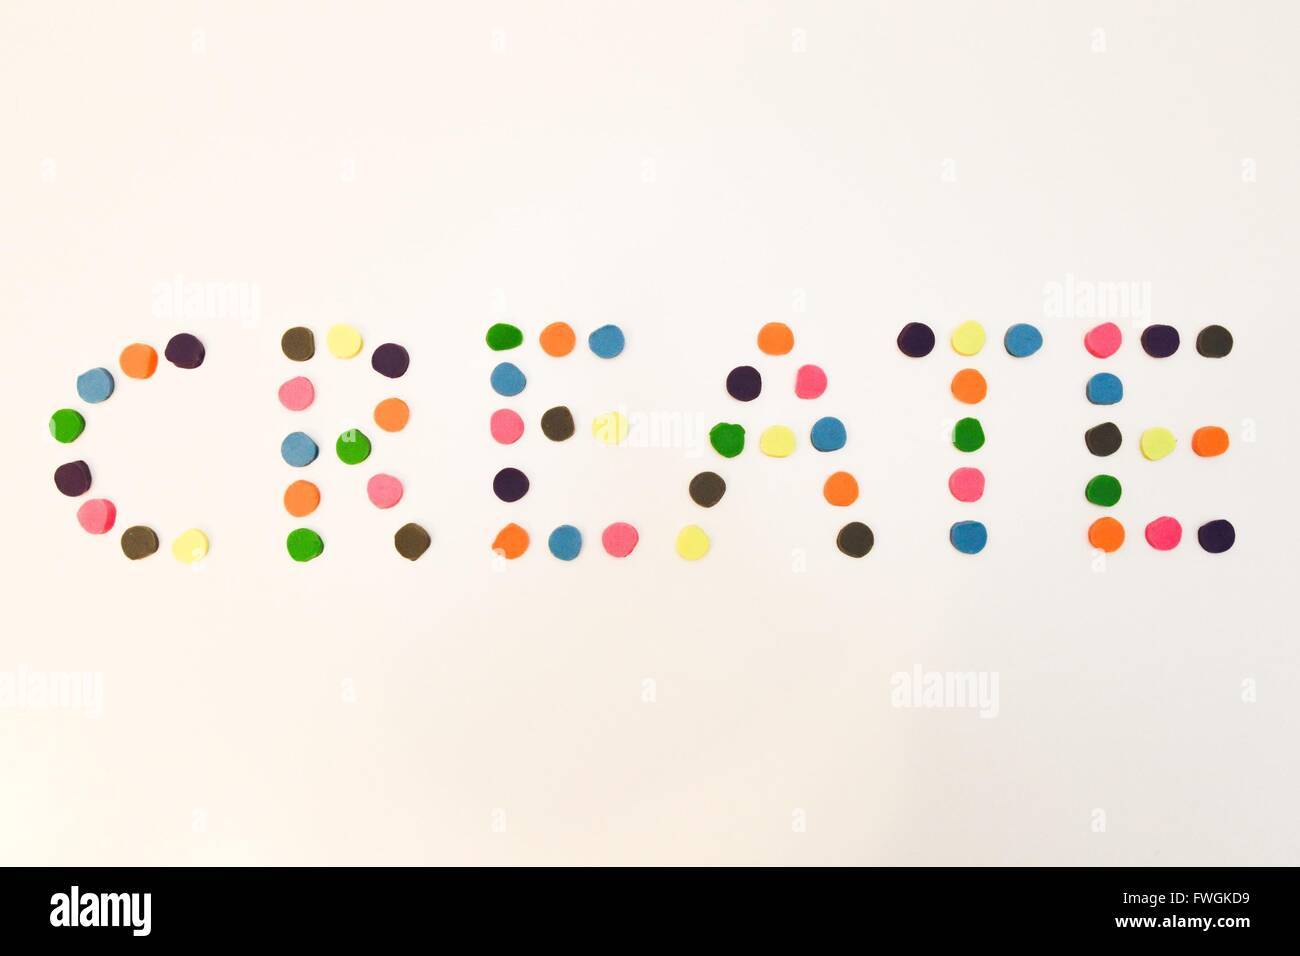 Create Text Made Of Multi Colored Dots On White Background - Stock Image